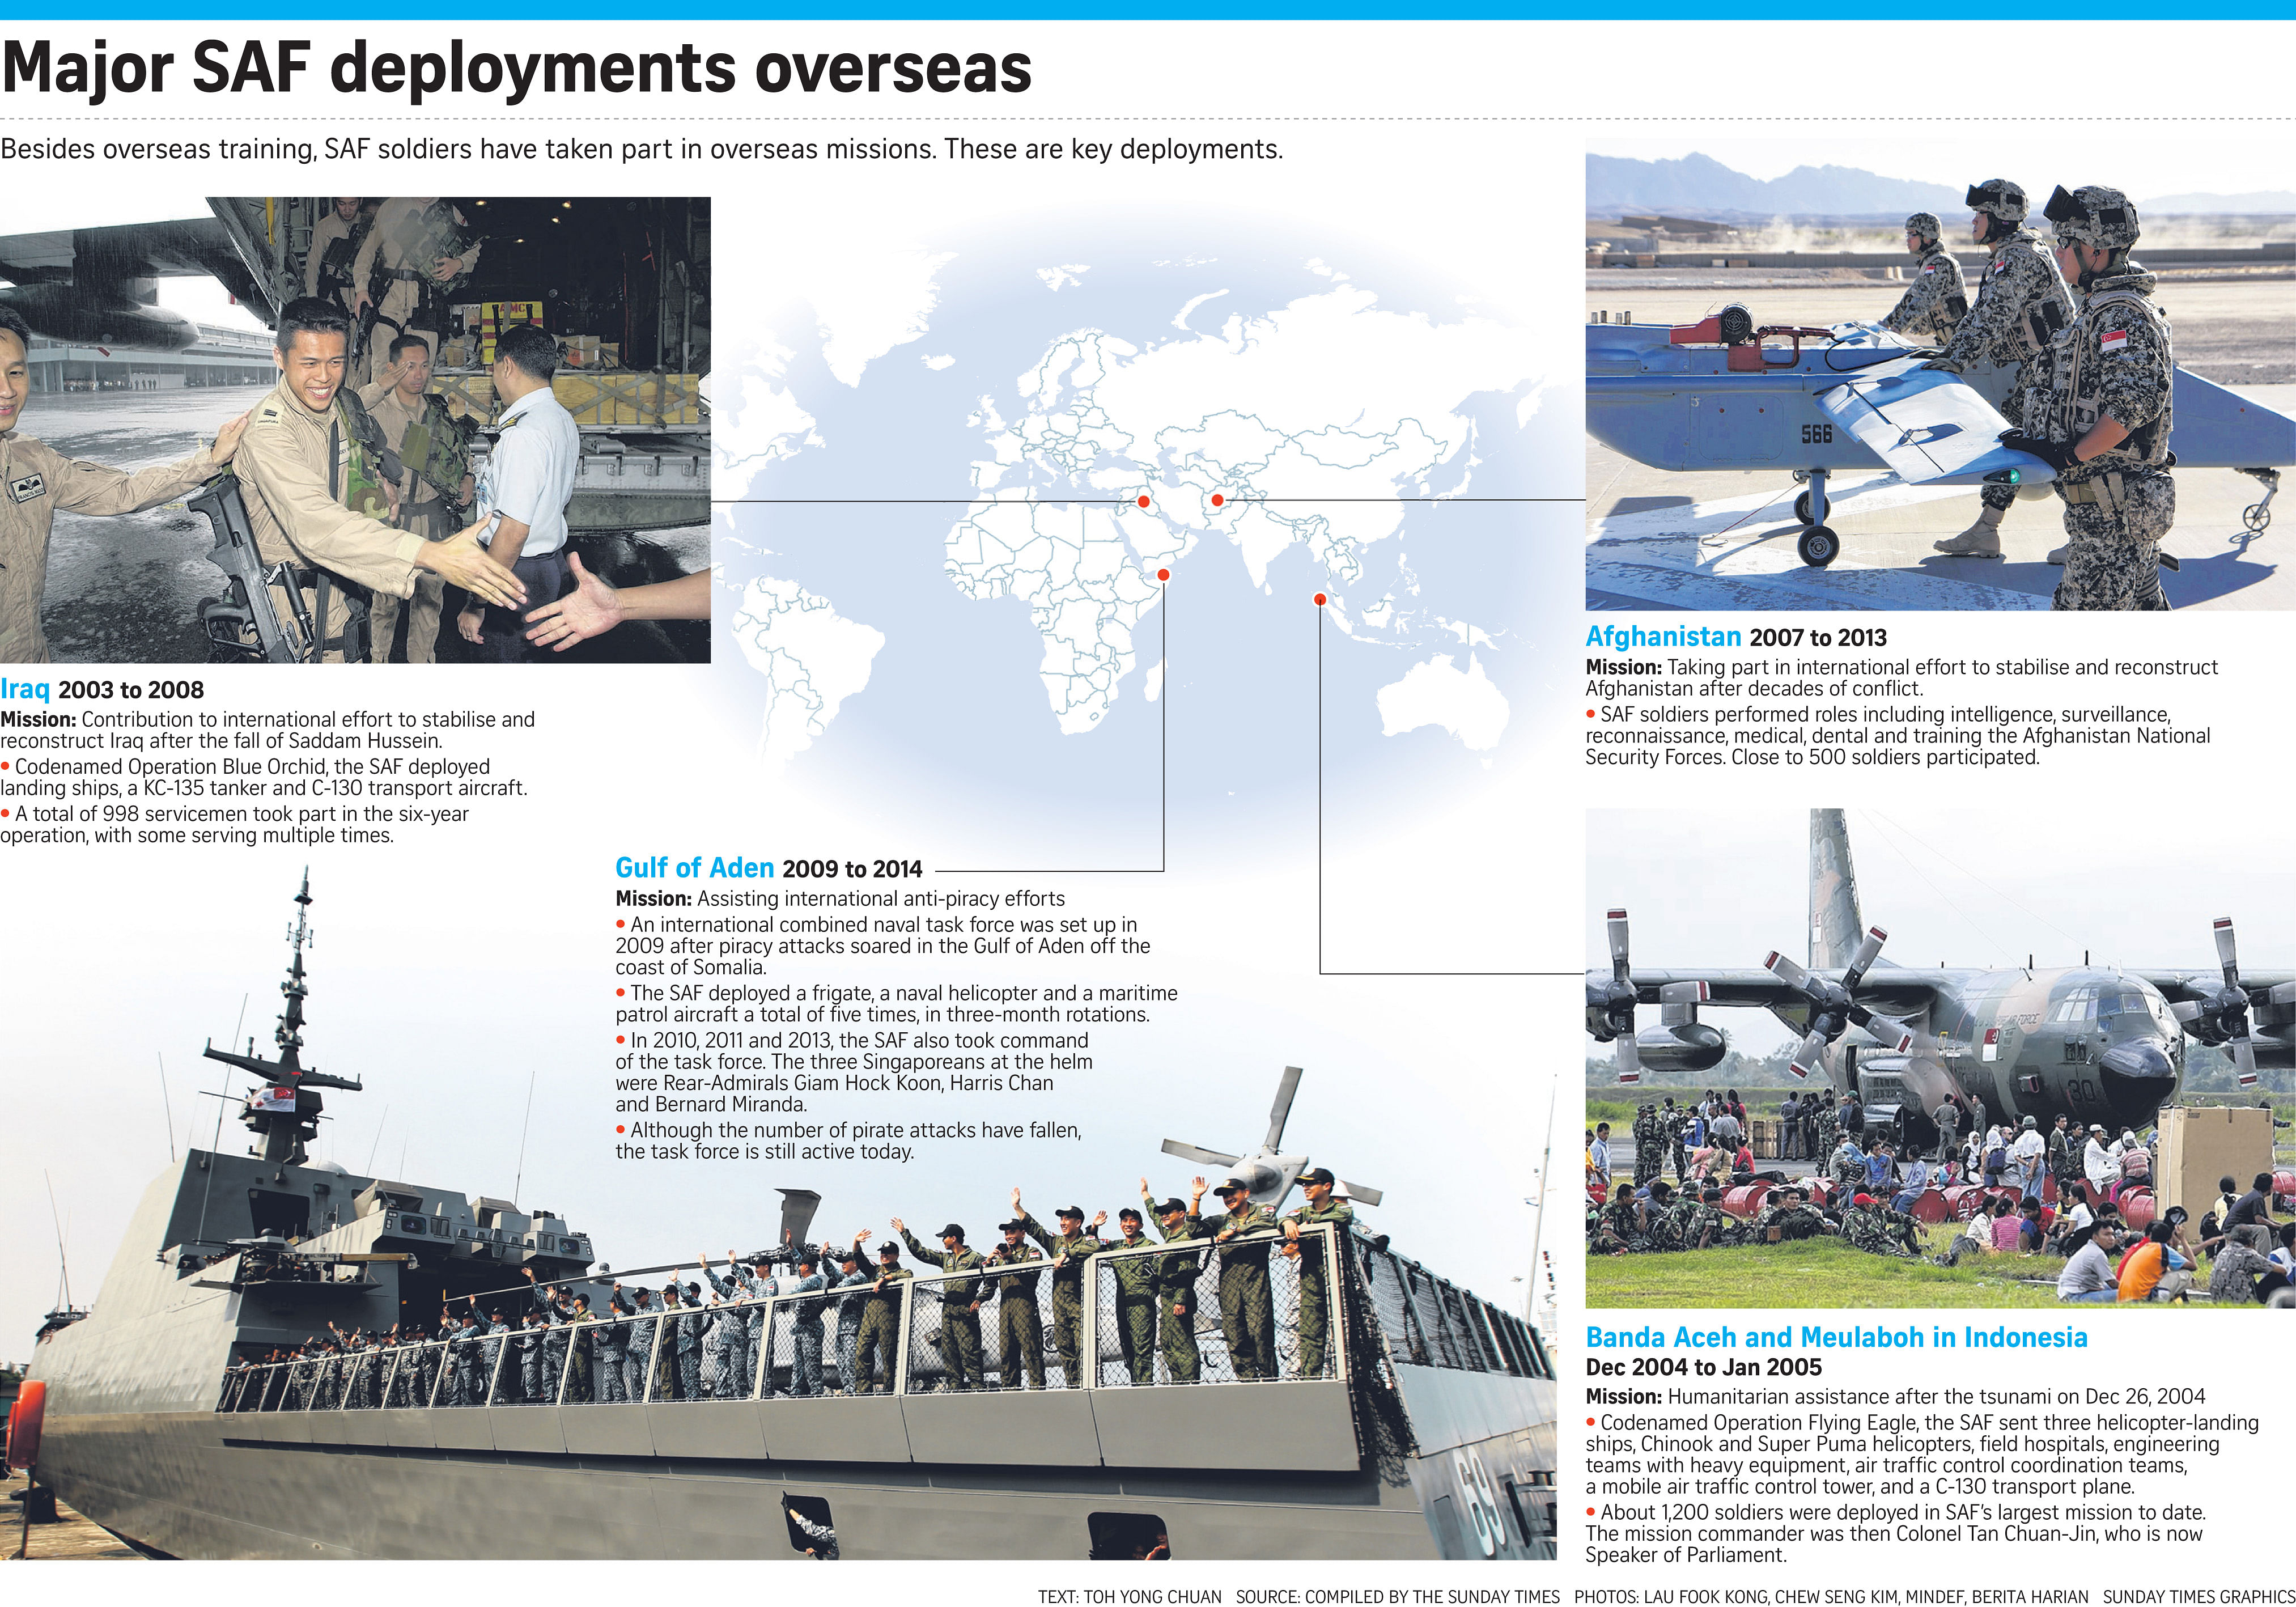 Singapore soldiers on the front line: Flying flag high amid